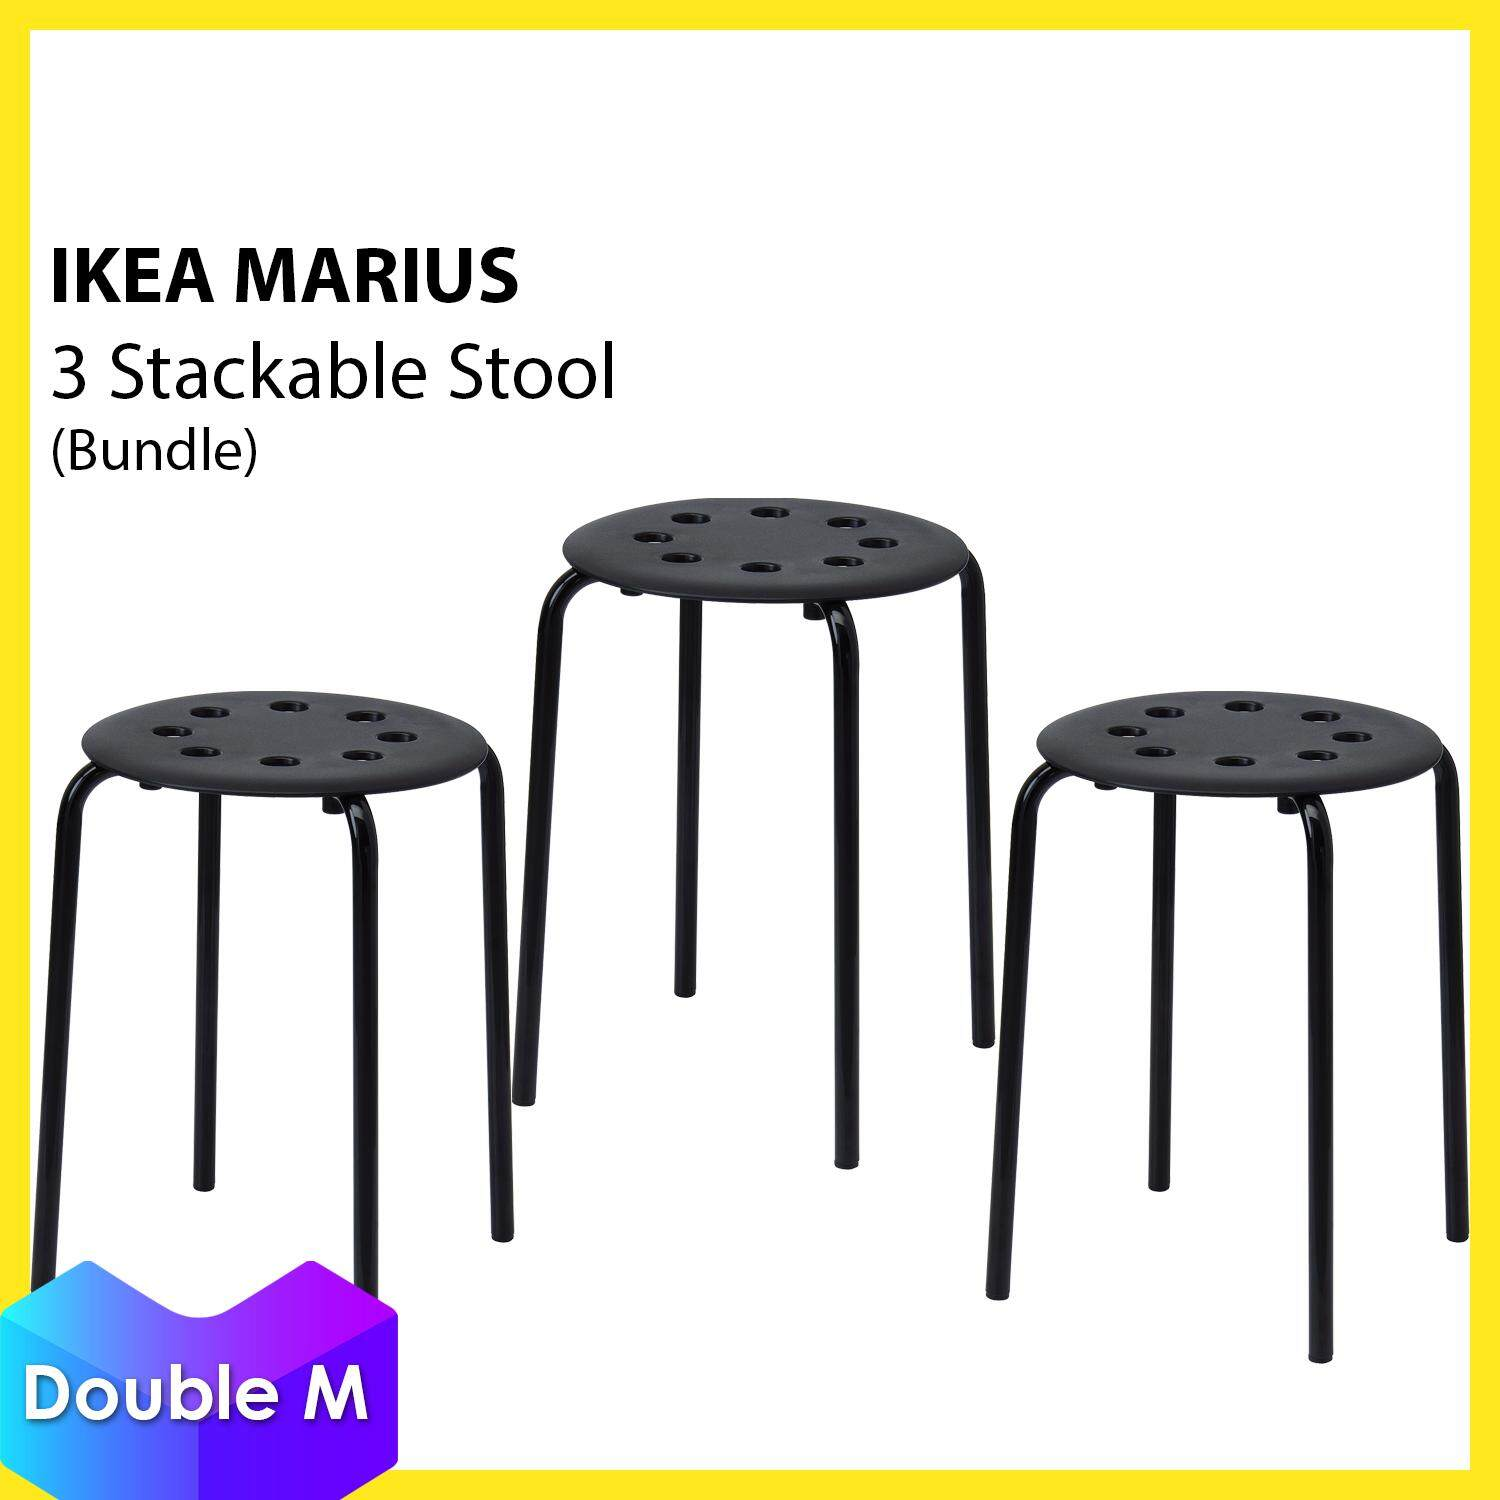 Ikea Marius Polypropylene Plastic In Outdoor Stackable Stool Chair 3 Pieces White Black Red